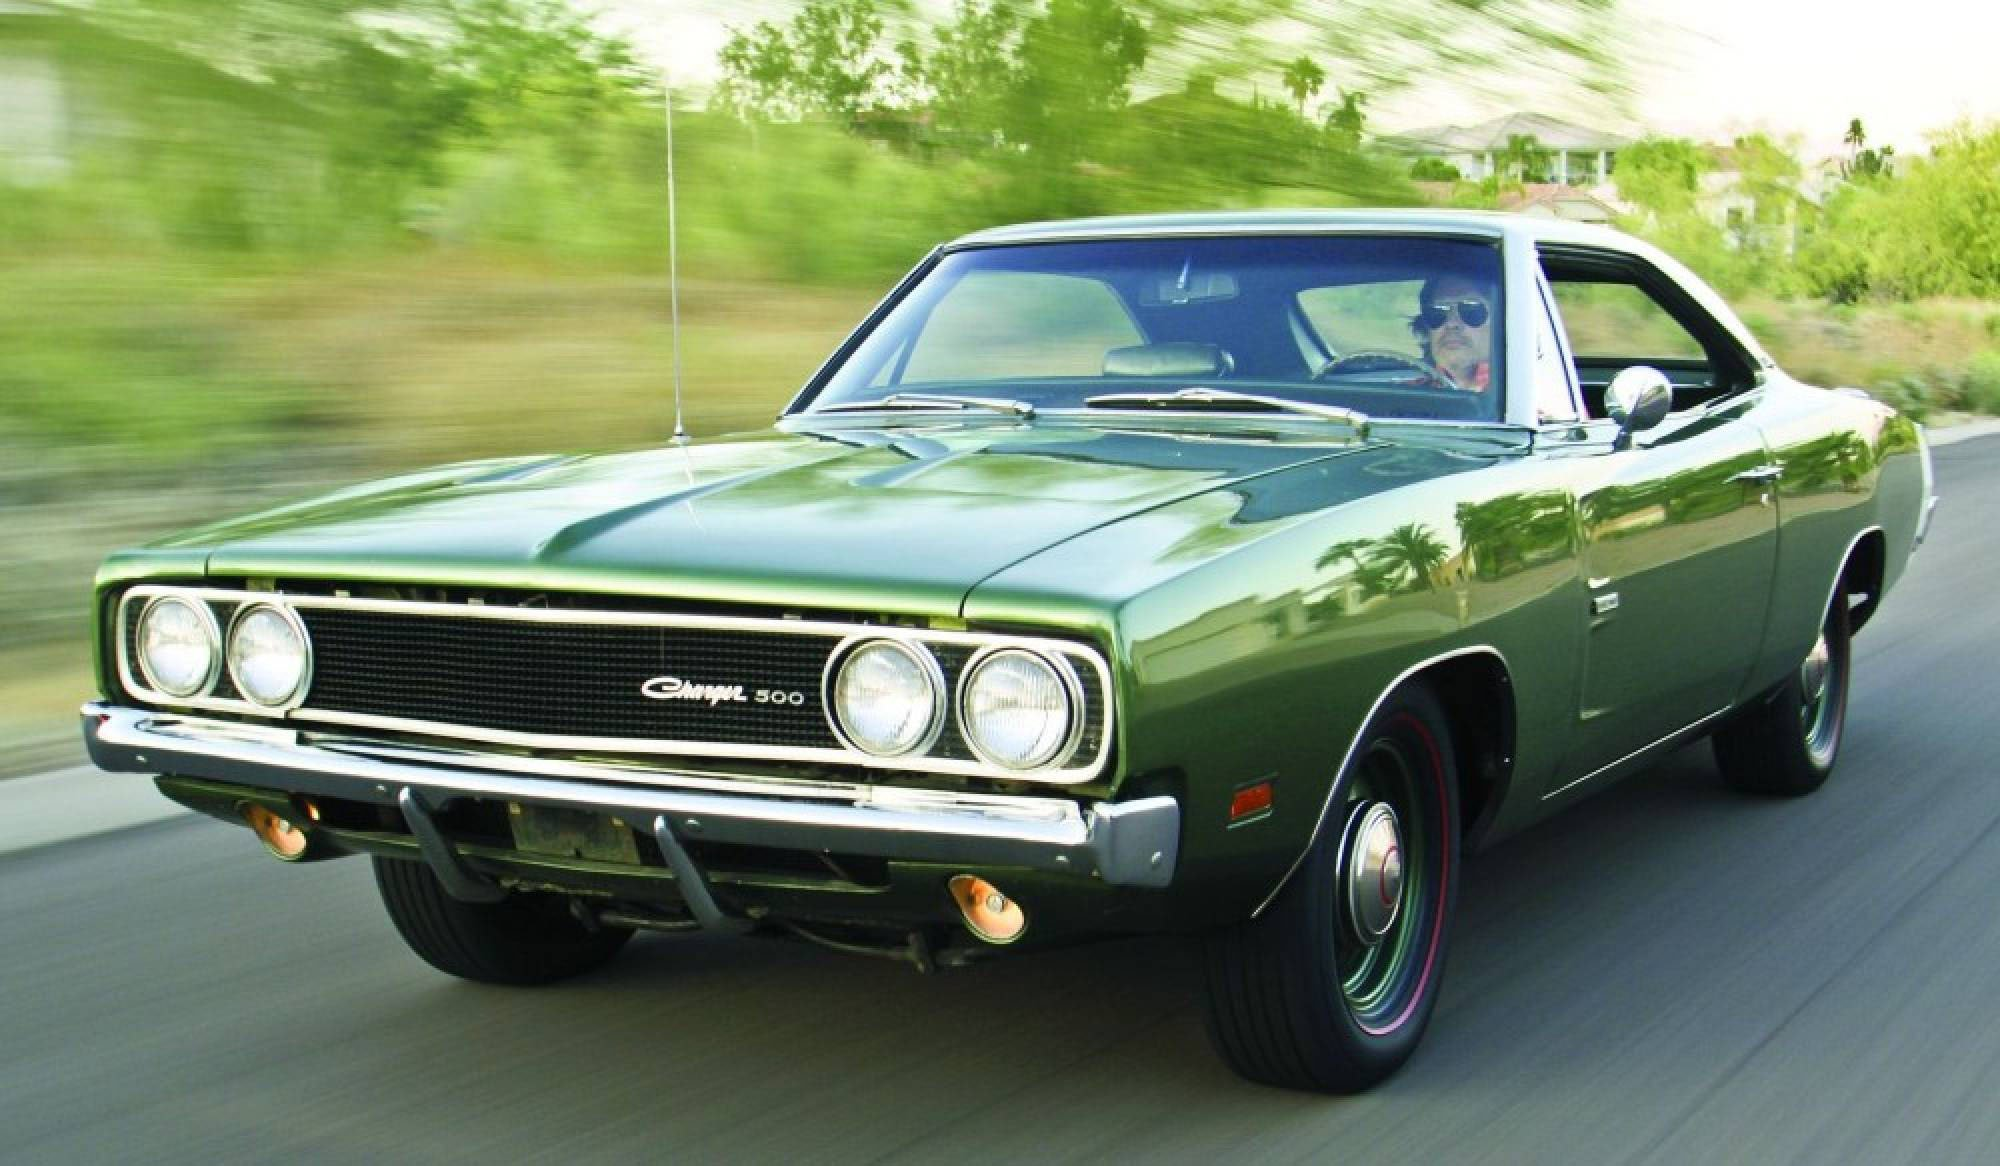 1968 Dodge Charger Drag Car Muscle Cars You Should Know 1969 Daytona The 500 Was Dodges First Attempt At Making Second Generation More Aerodynamic Though It Improved Over Standard